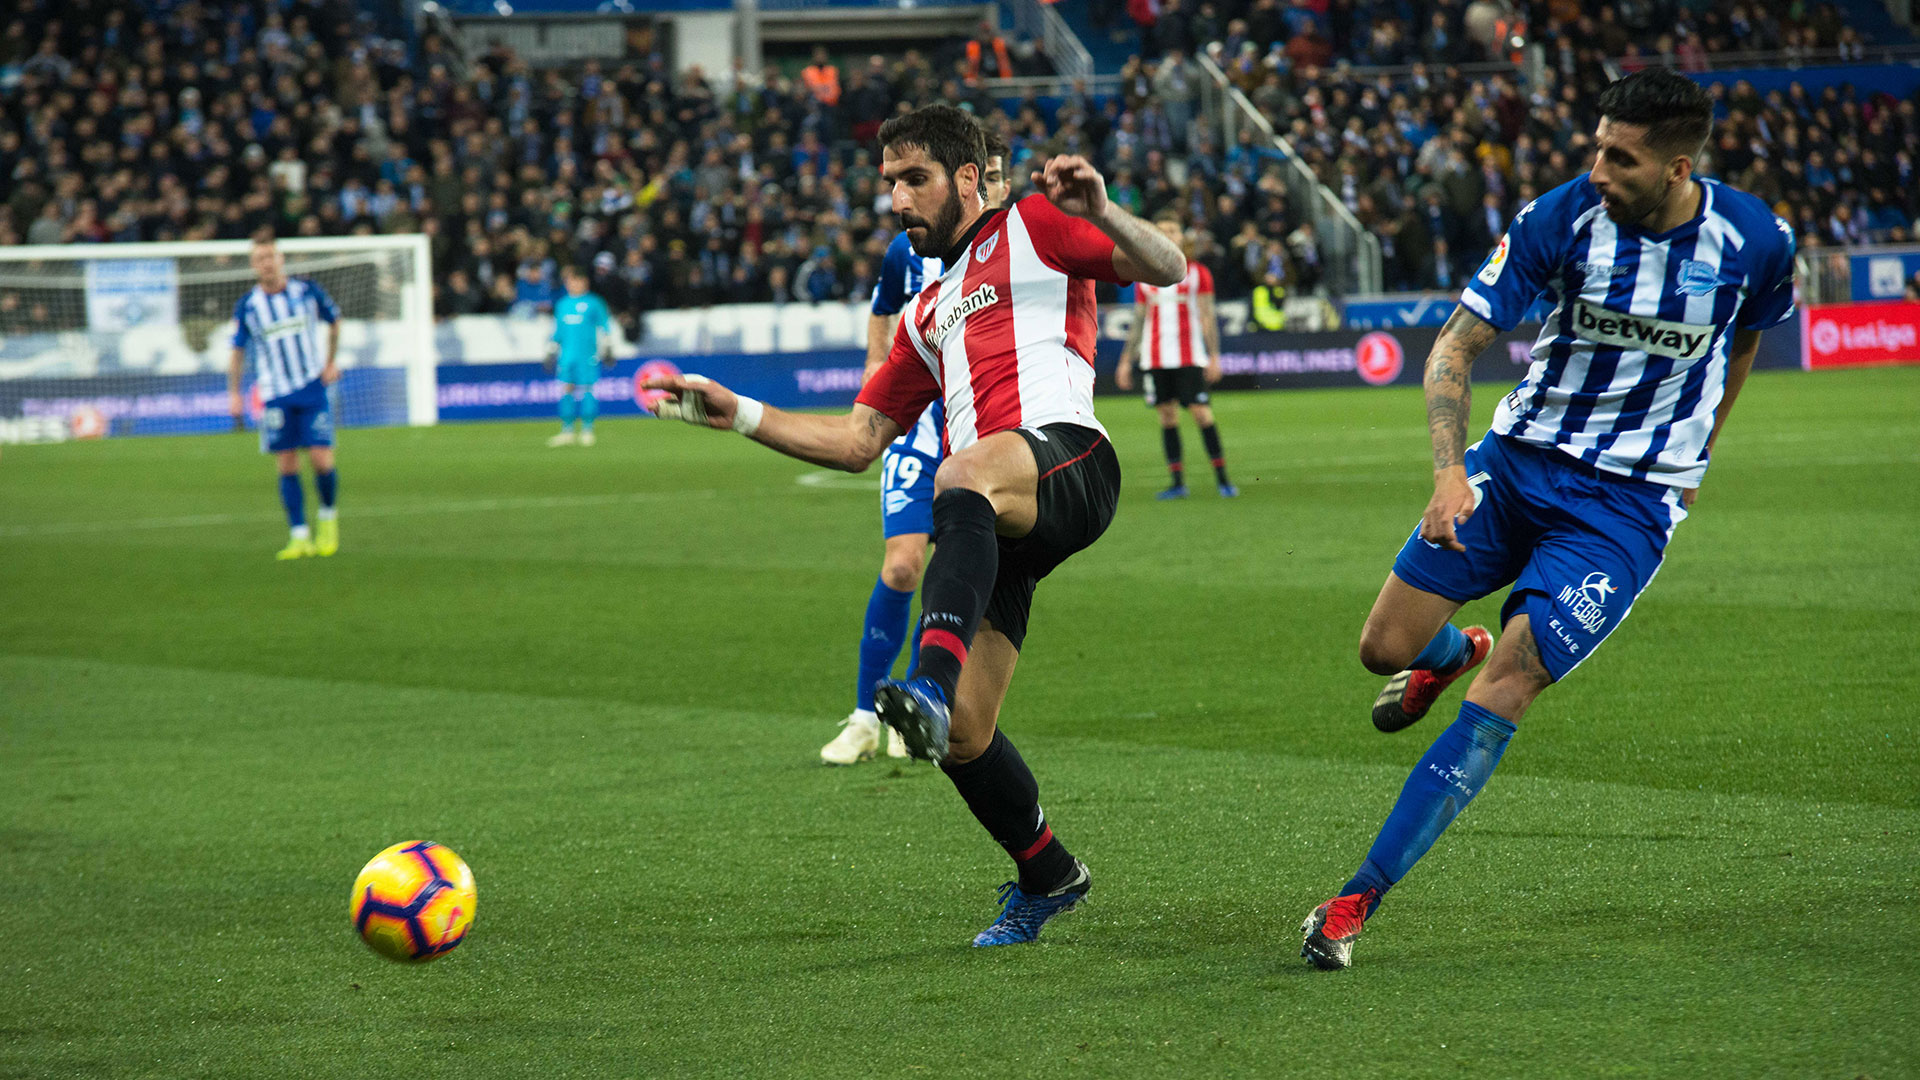 Athletic Club-Deportivo Alavés, cesión de carnés